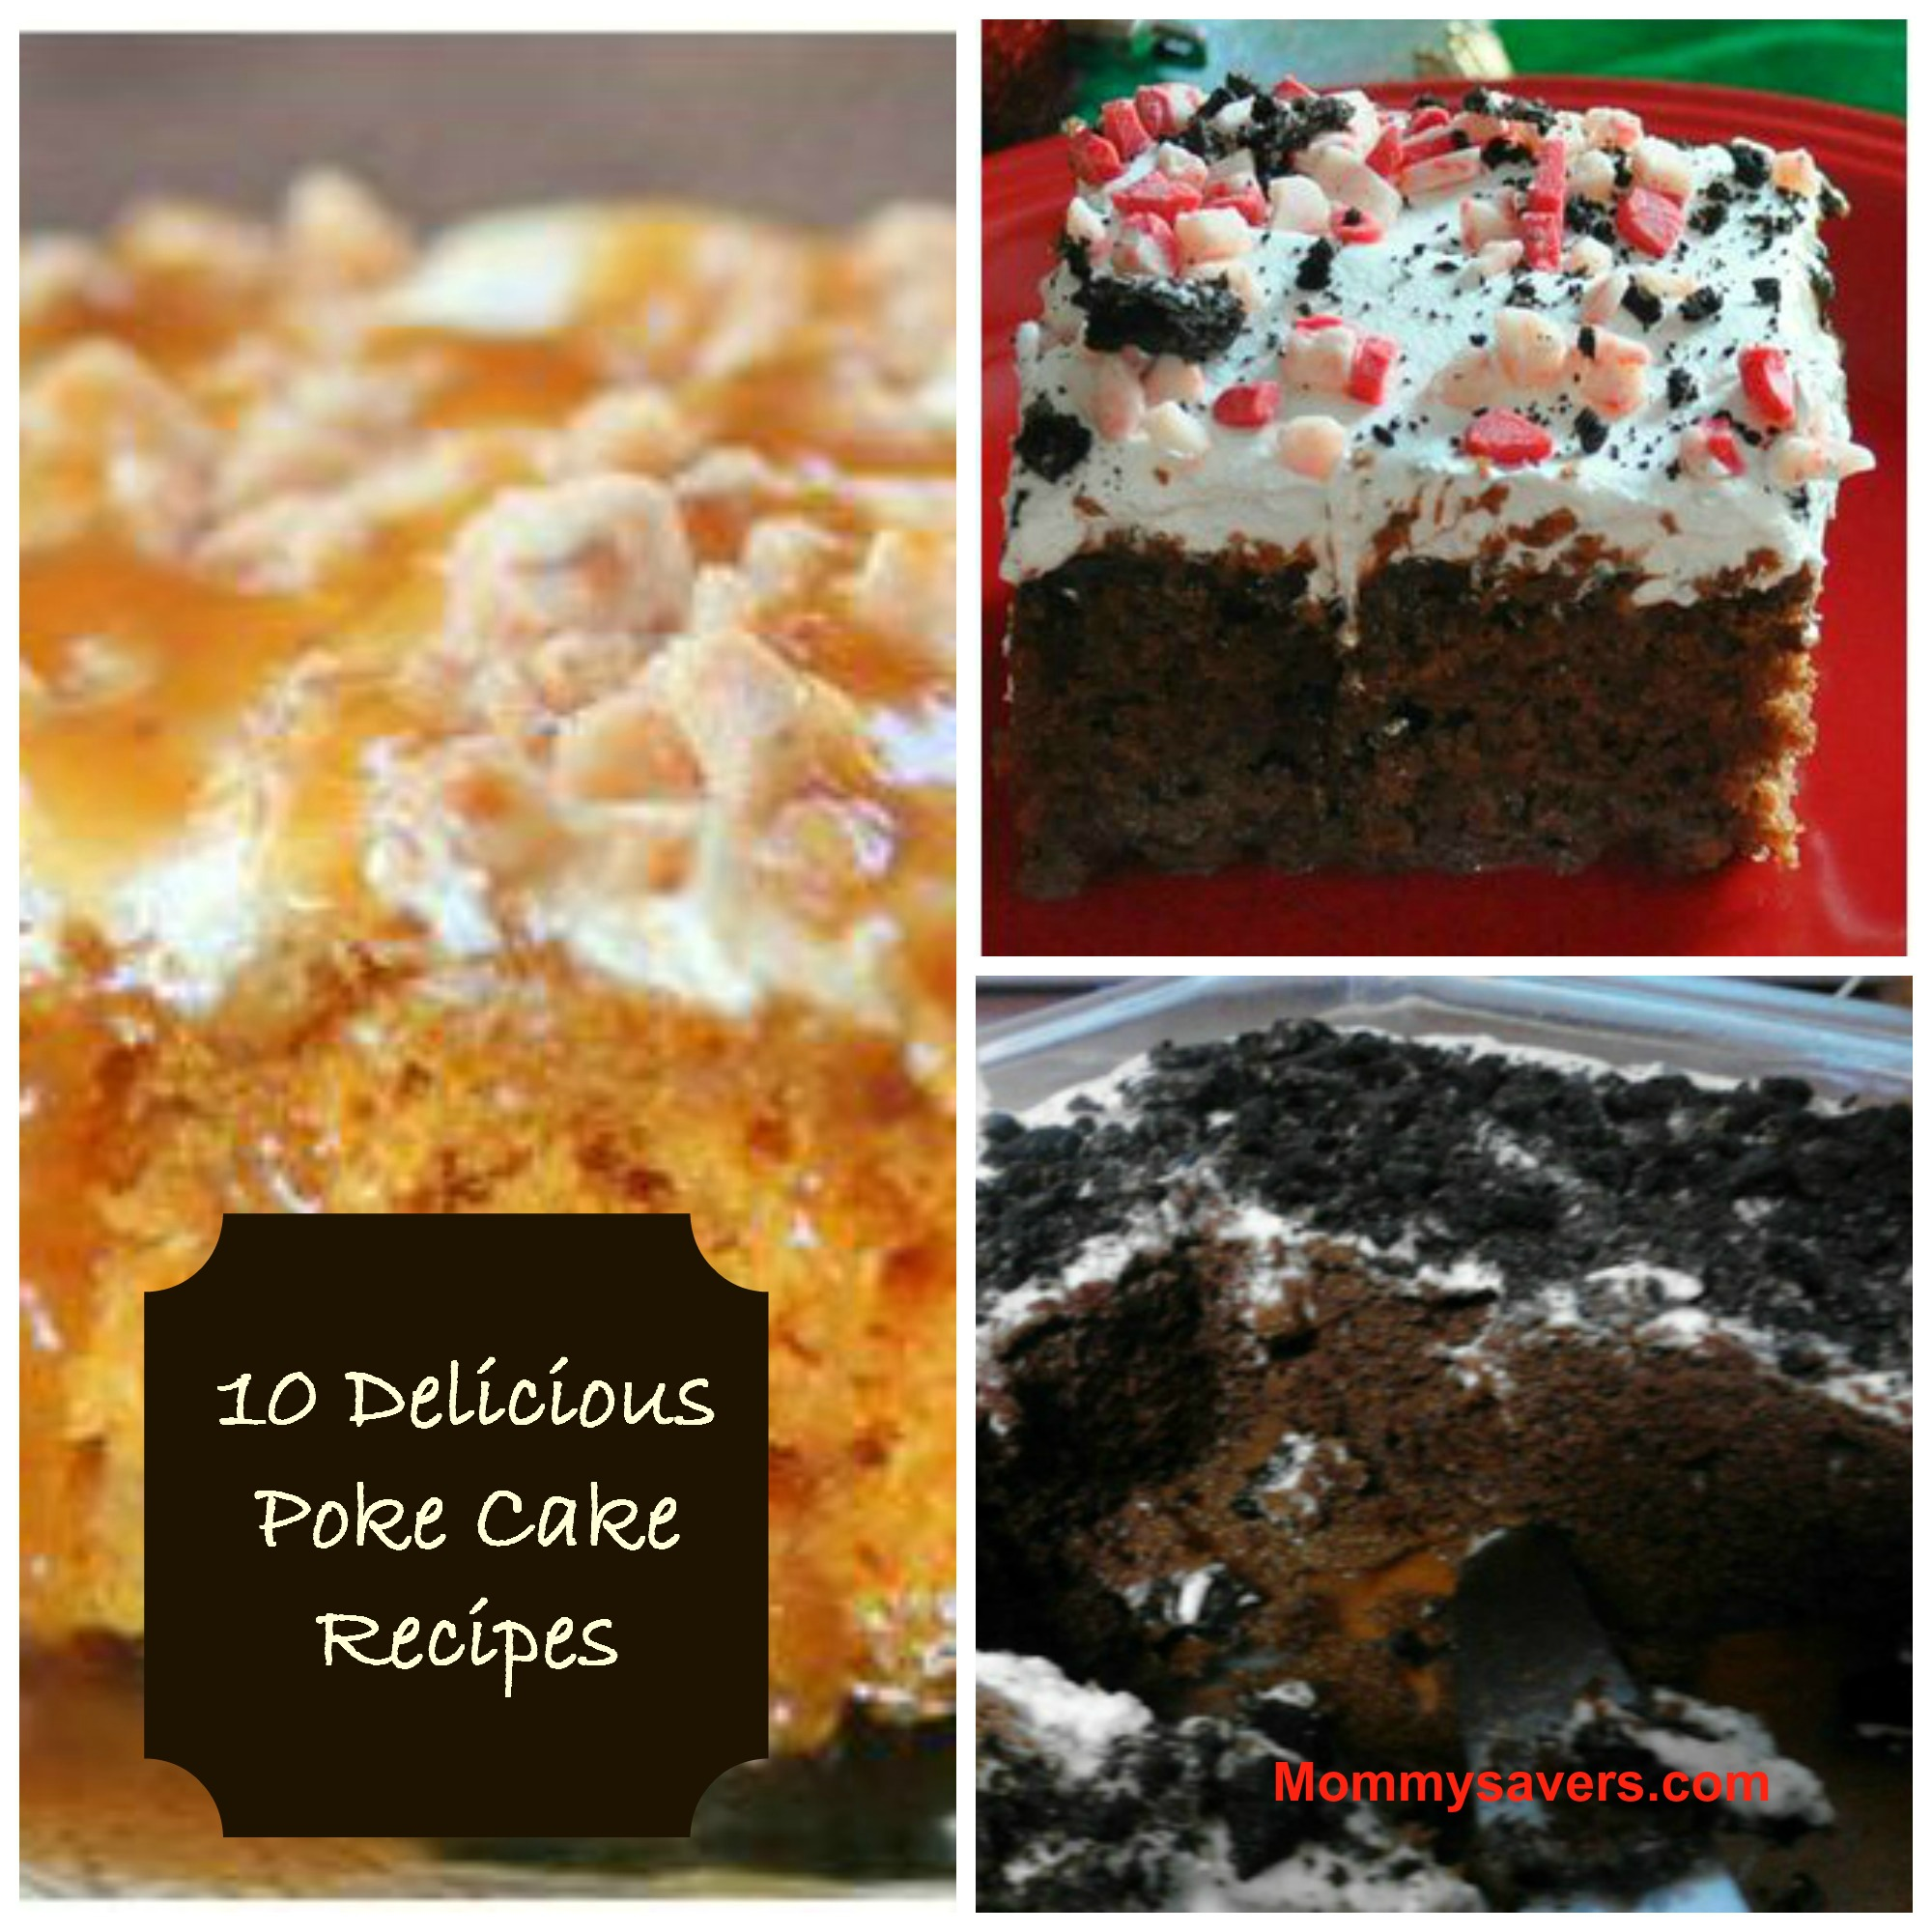 Poke Cake Recipes - Mommysavers